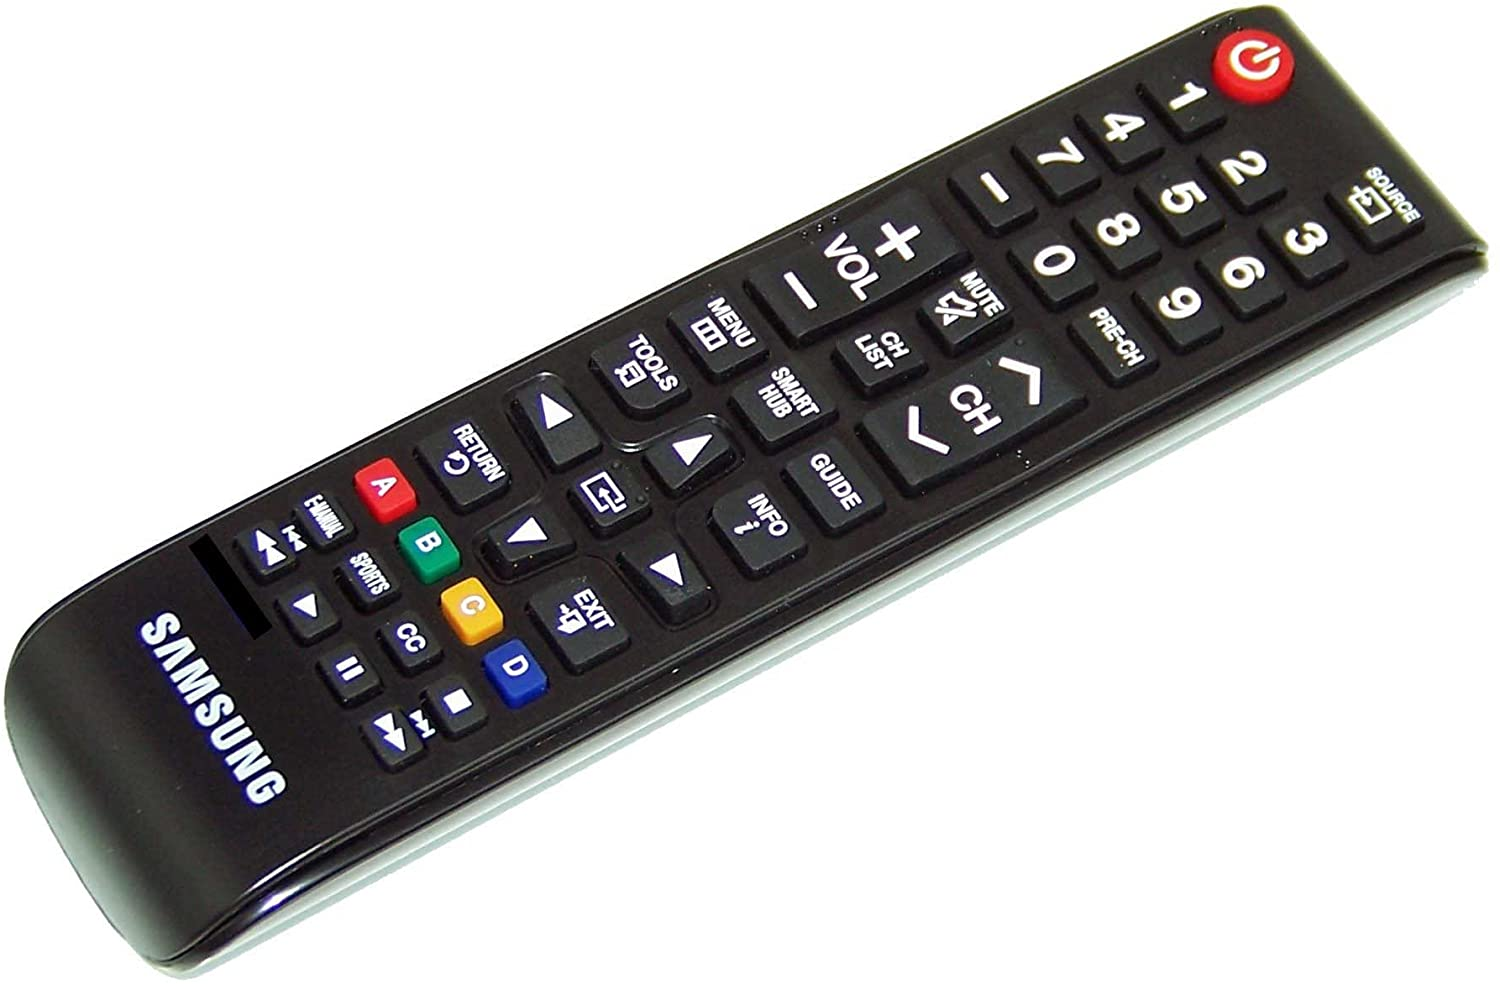 OEM Samsung Remote Control Specifically for Samsung UN19F4000BF, UN60EH6050, UN60EH6050FXZA, UN32F5050, UN32F5050AF, UN29F4000AF